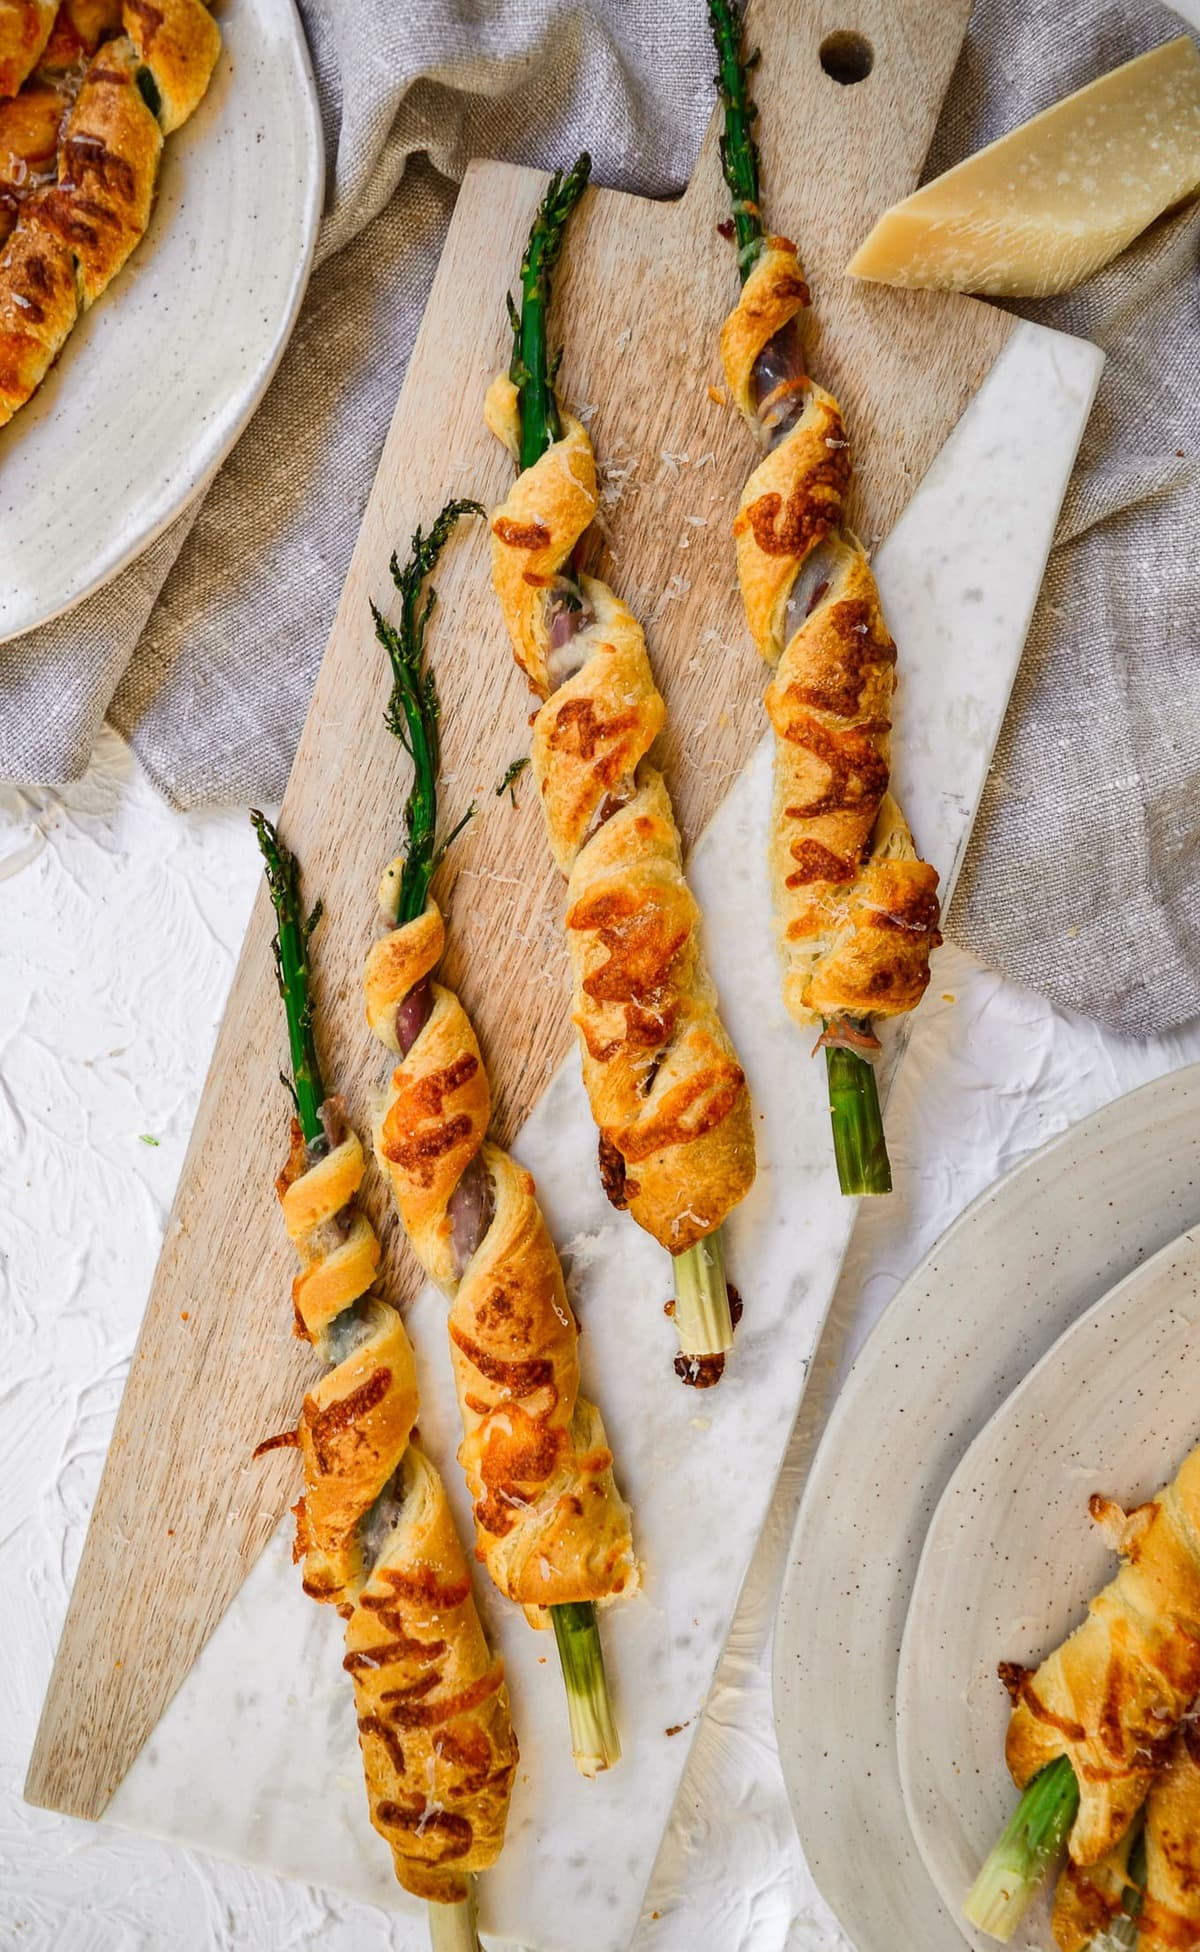 Eating your veggies is no problem when they're wrapped in cheesy crescent rolls! Recipe via Thecookierookie.com